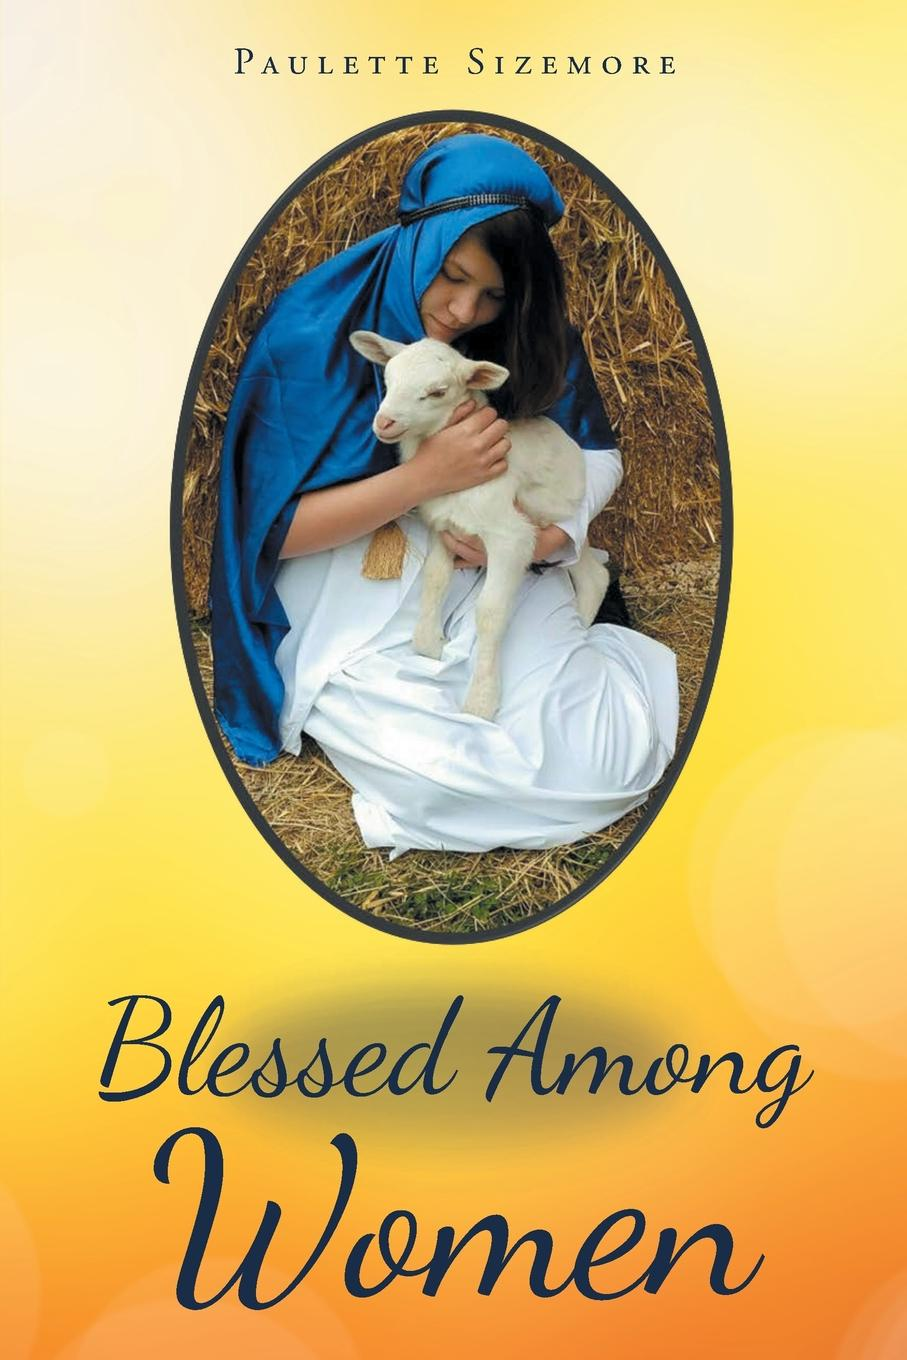 Paulette Sizemore Blessed Among Women. In the words of Mary, the Mother of Jesus